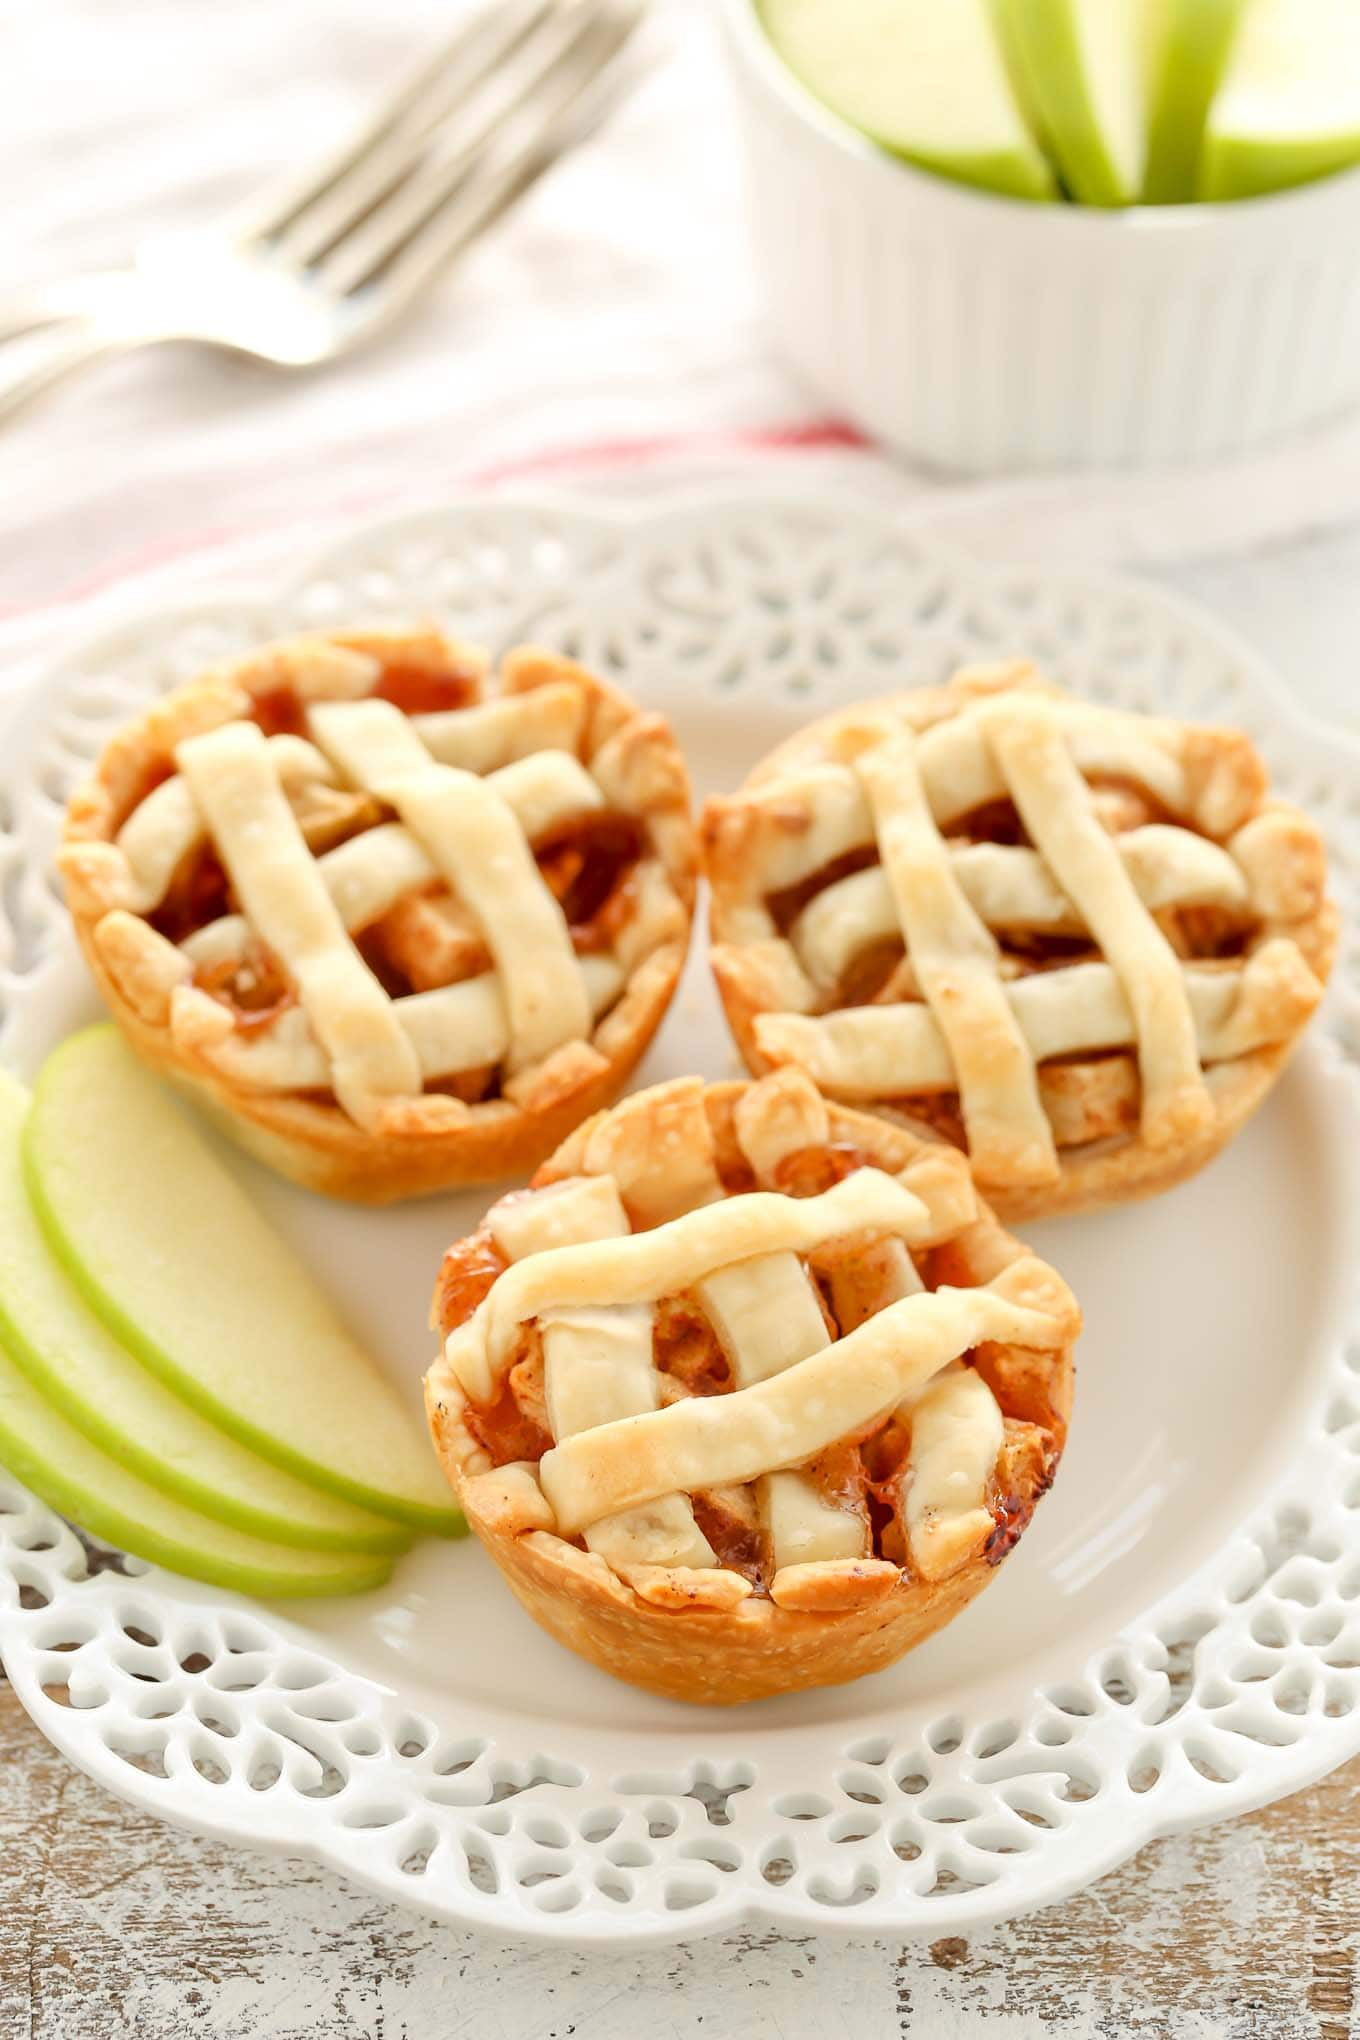 Petite Apple Pies Recipe forecasting